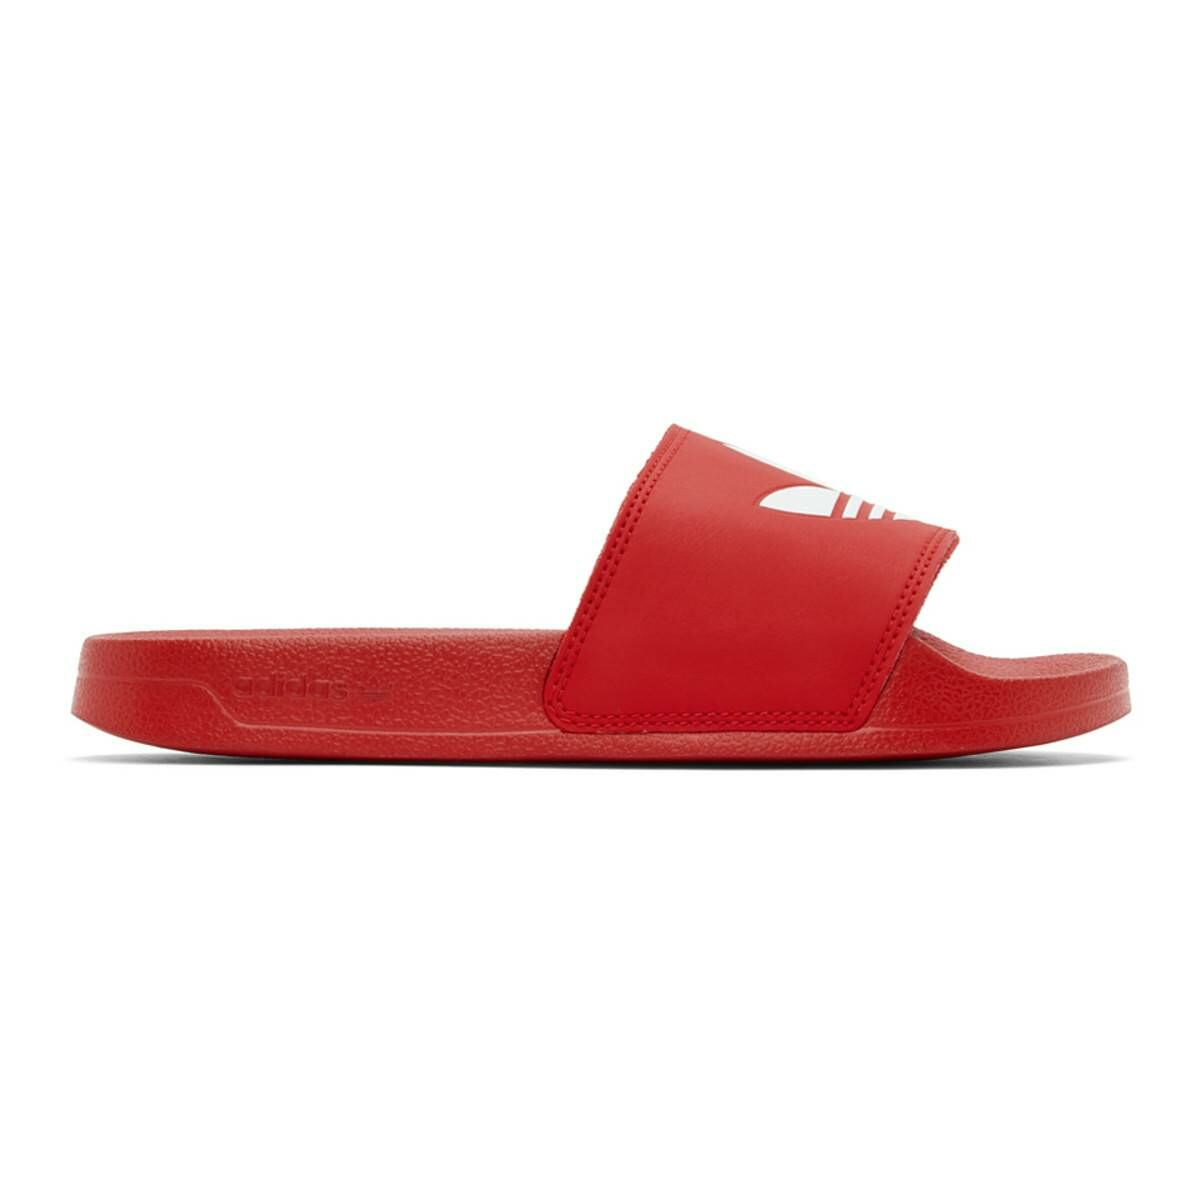 adidas Originals Red Adilette Lite Pool Slides Ssense USA MEN Men SHOES Mens SANDALS